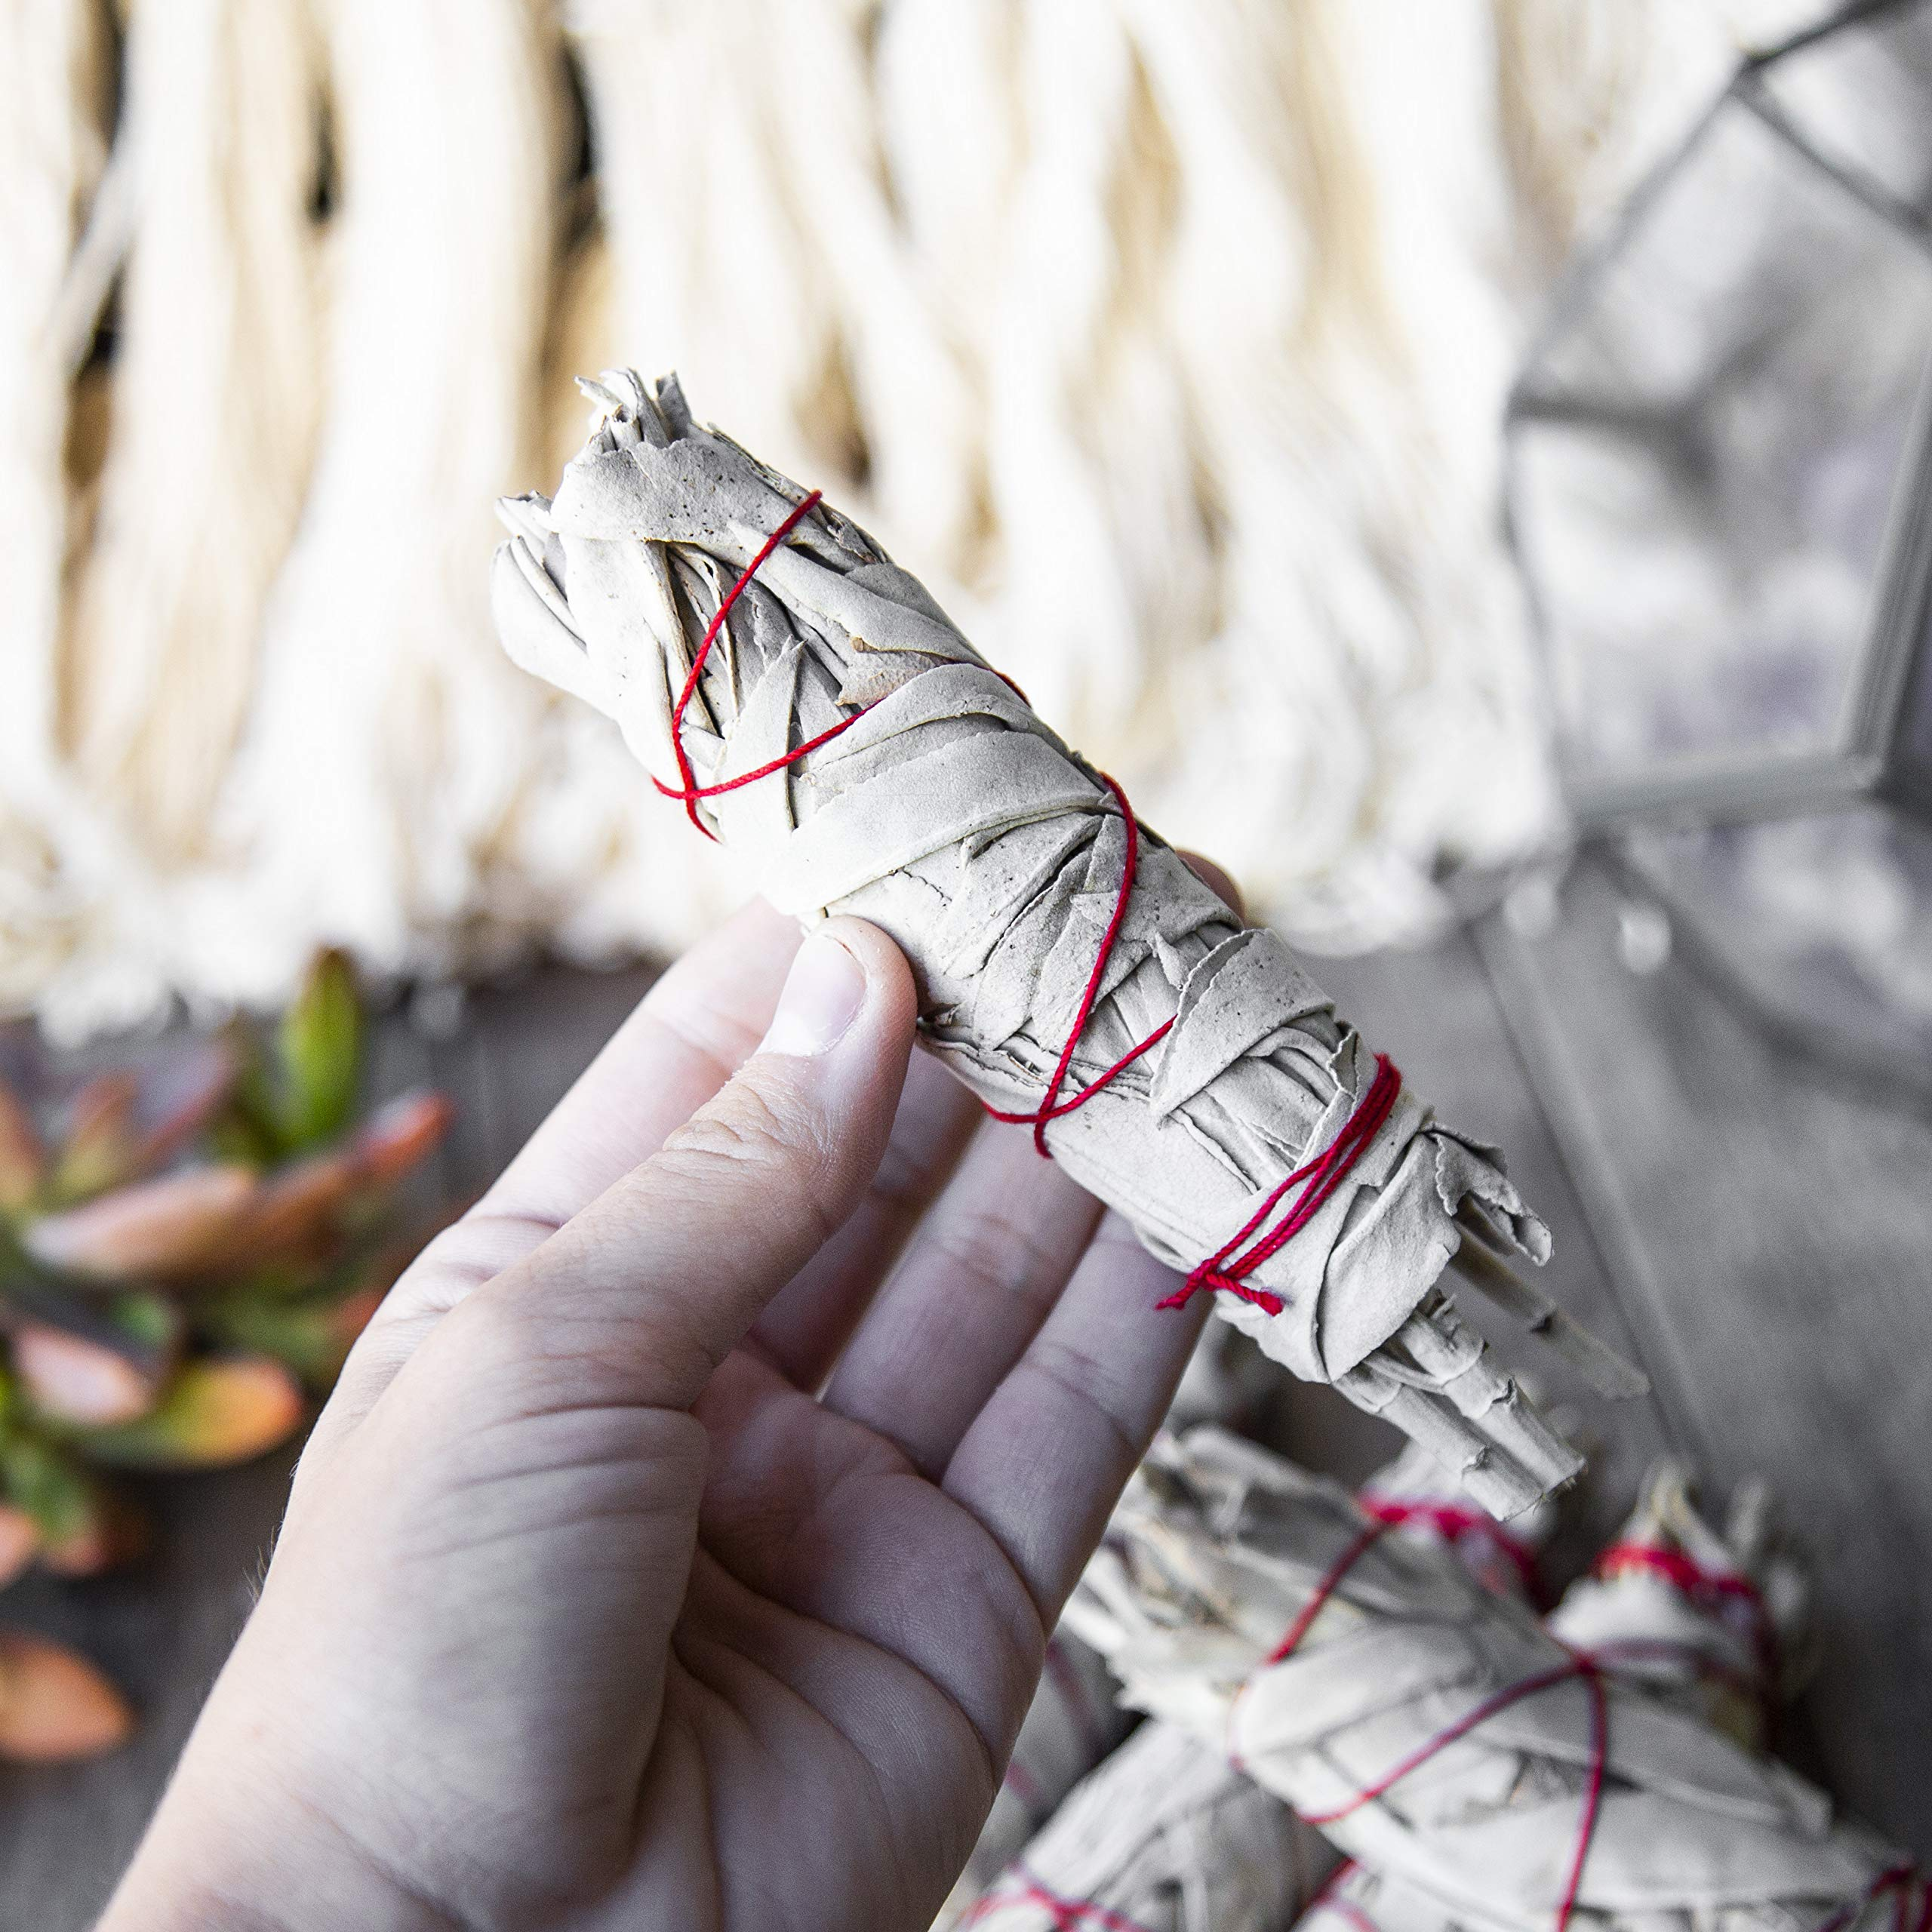 Beverly Oaks California White Sage 4'' Smudge Stick, Perfect for Smudging, Meditation, Protection and Incense, 20 Pack by Beverly Oaks (Image #4)